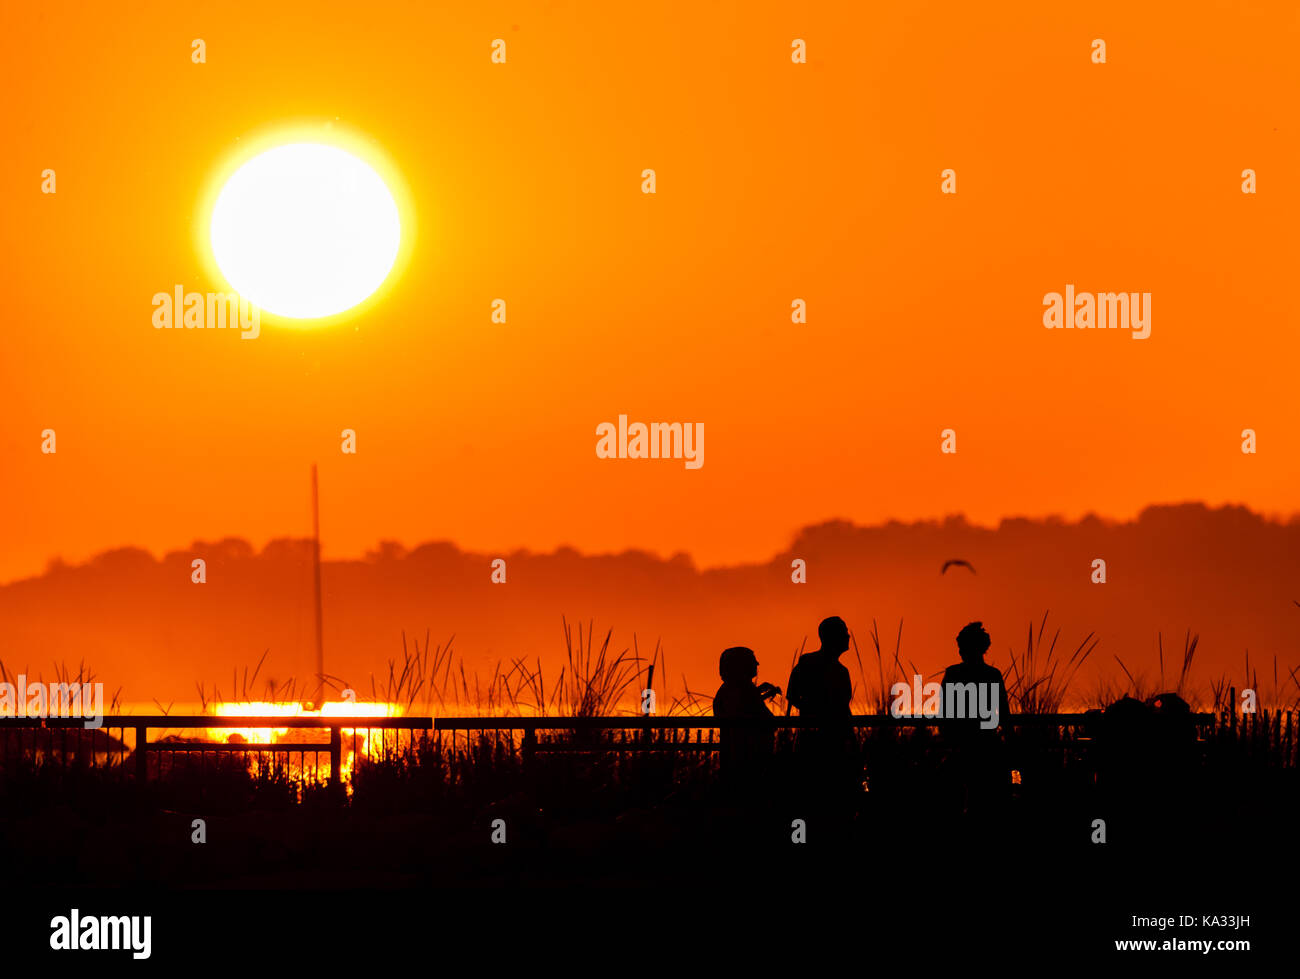 Ontario, Canada. 24th Sep, 2017. Temperatures rose above 32 C across most of Southwestern Ontario on Sept, 24, 2017 - Stock Image